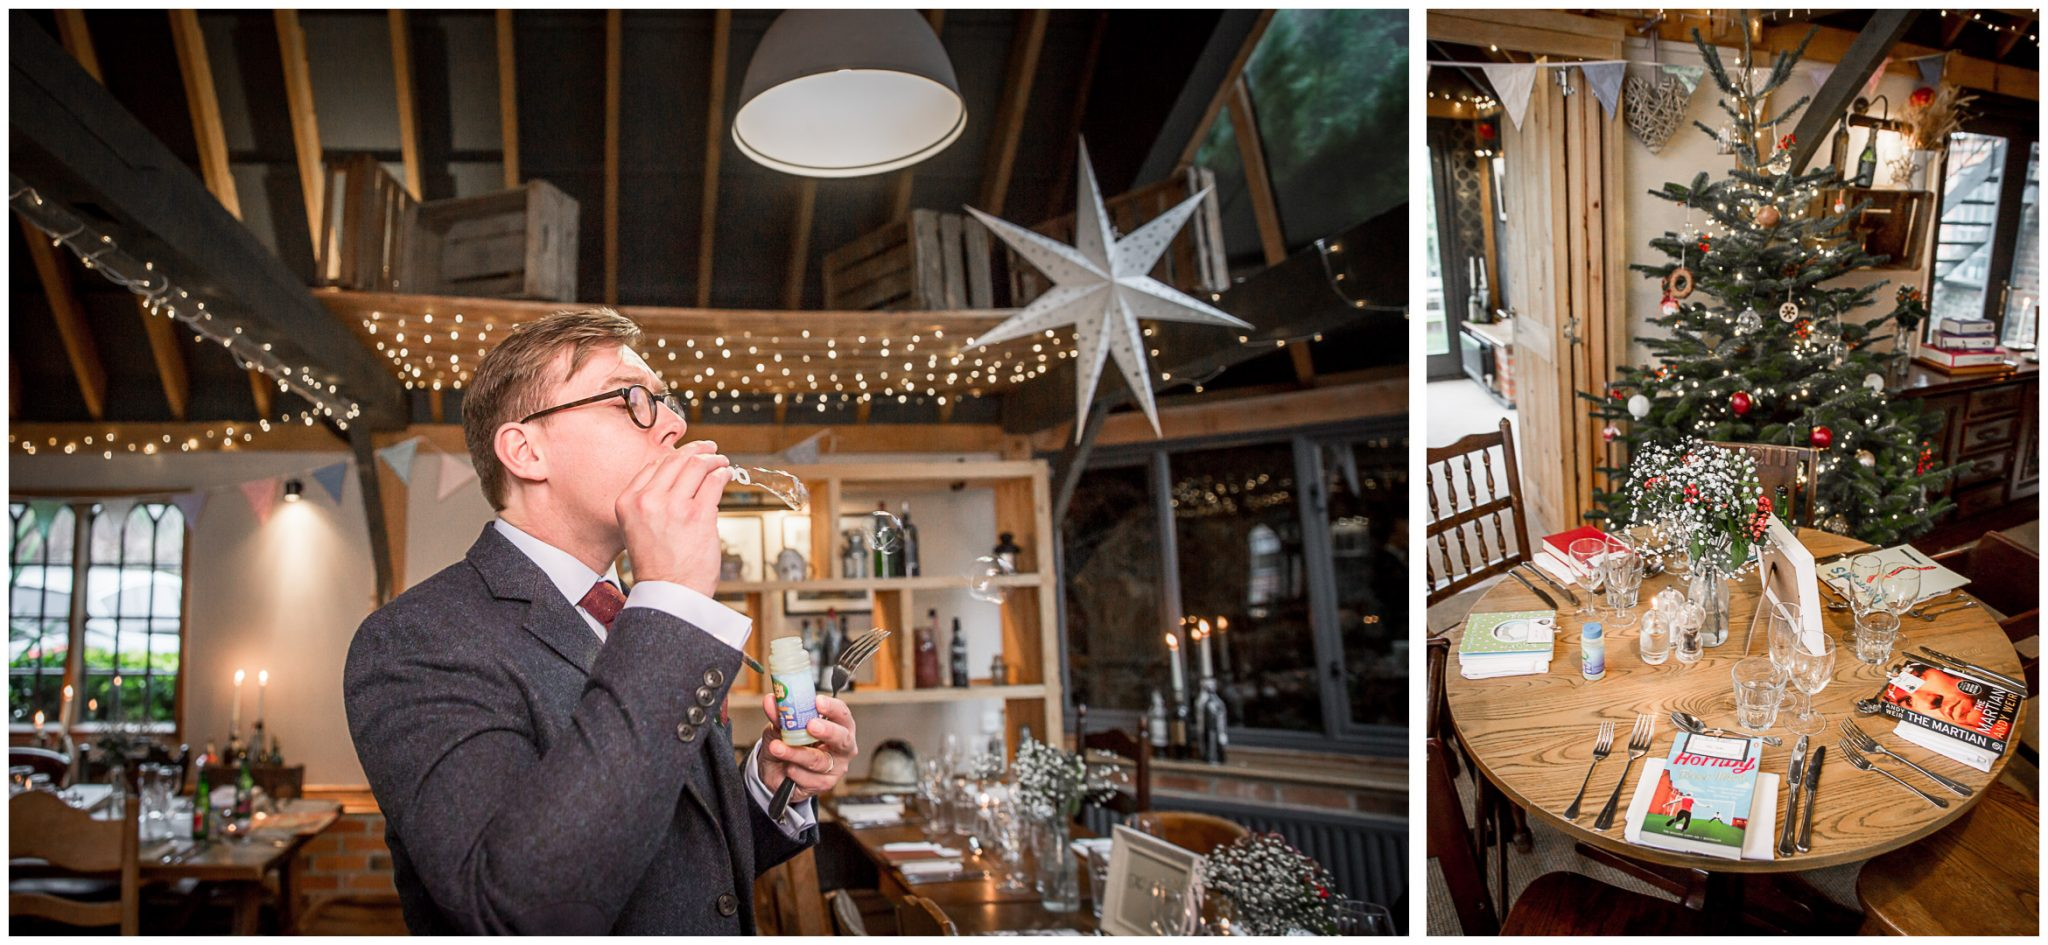 Castle Room Winchester wedding photography best man blowing bubbles